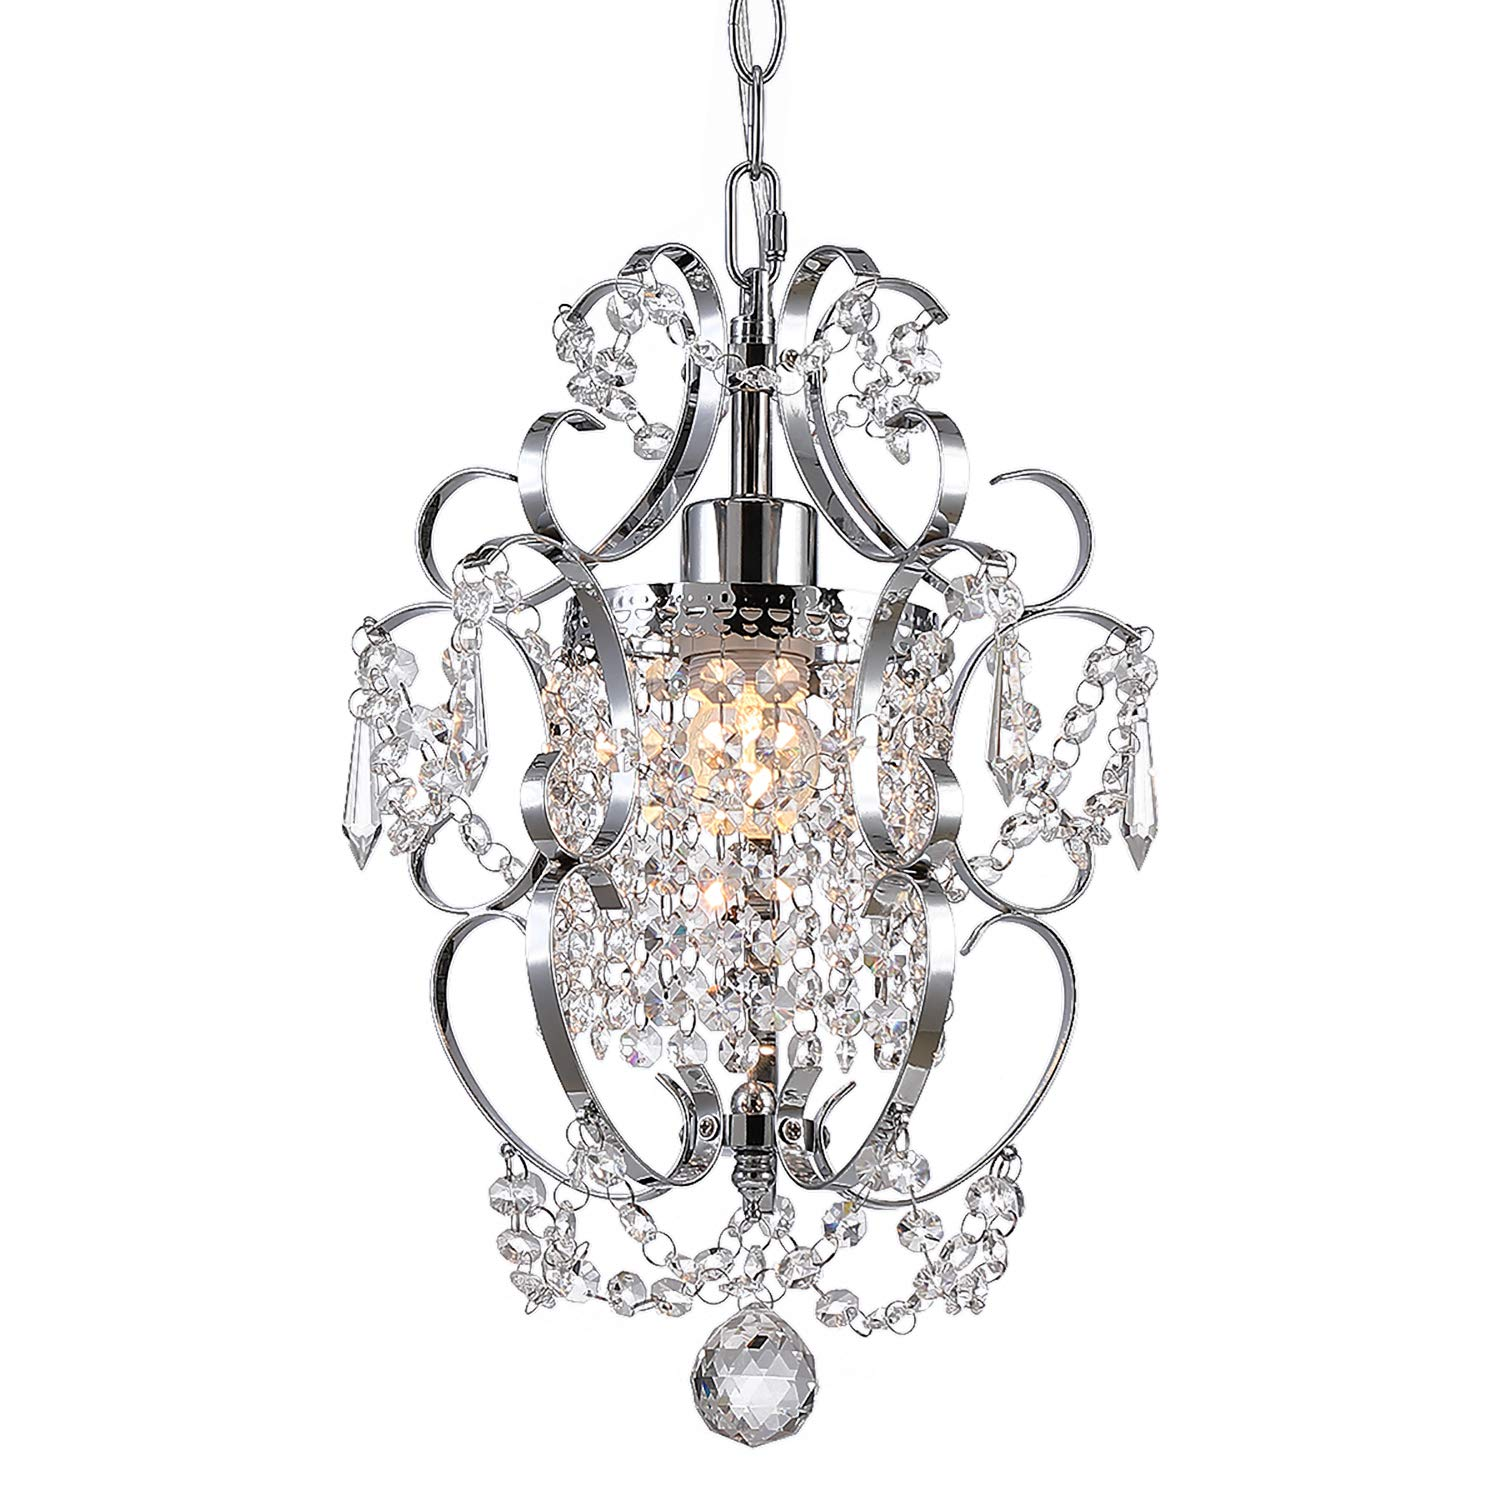 Riomasee Mini Chandelier,Crystal Chandeliers Lighting,Modern Elegant Crystal Pendant Iron Ceiling Light Fixture for Bathroom,Girls Room,Living Room 1-Light Chrome